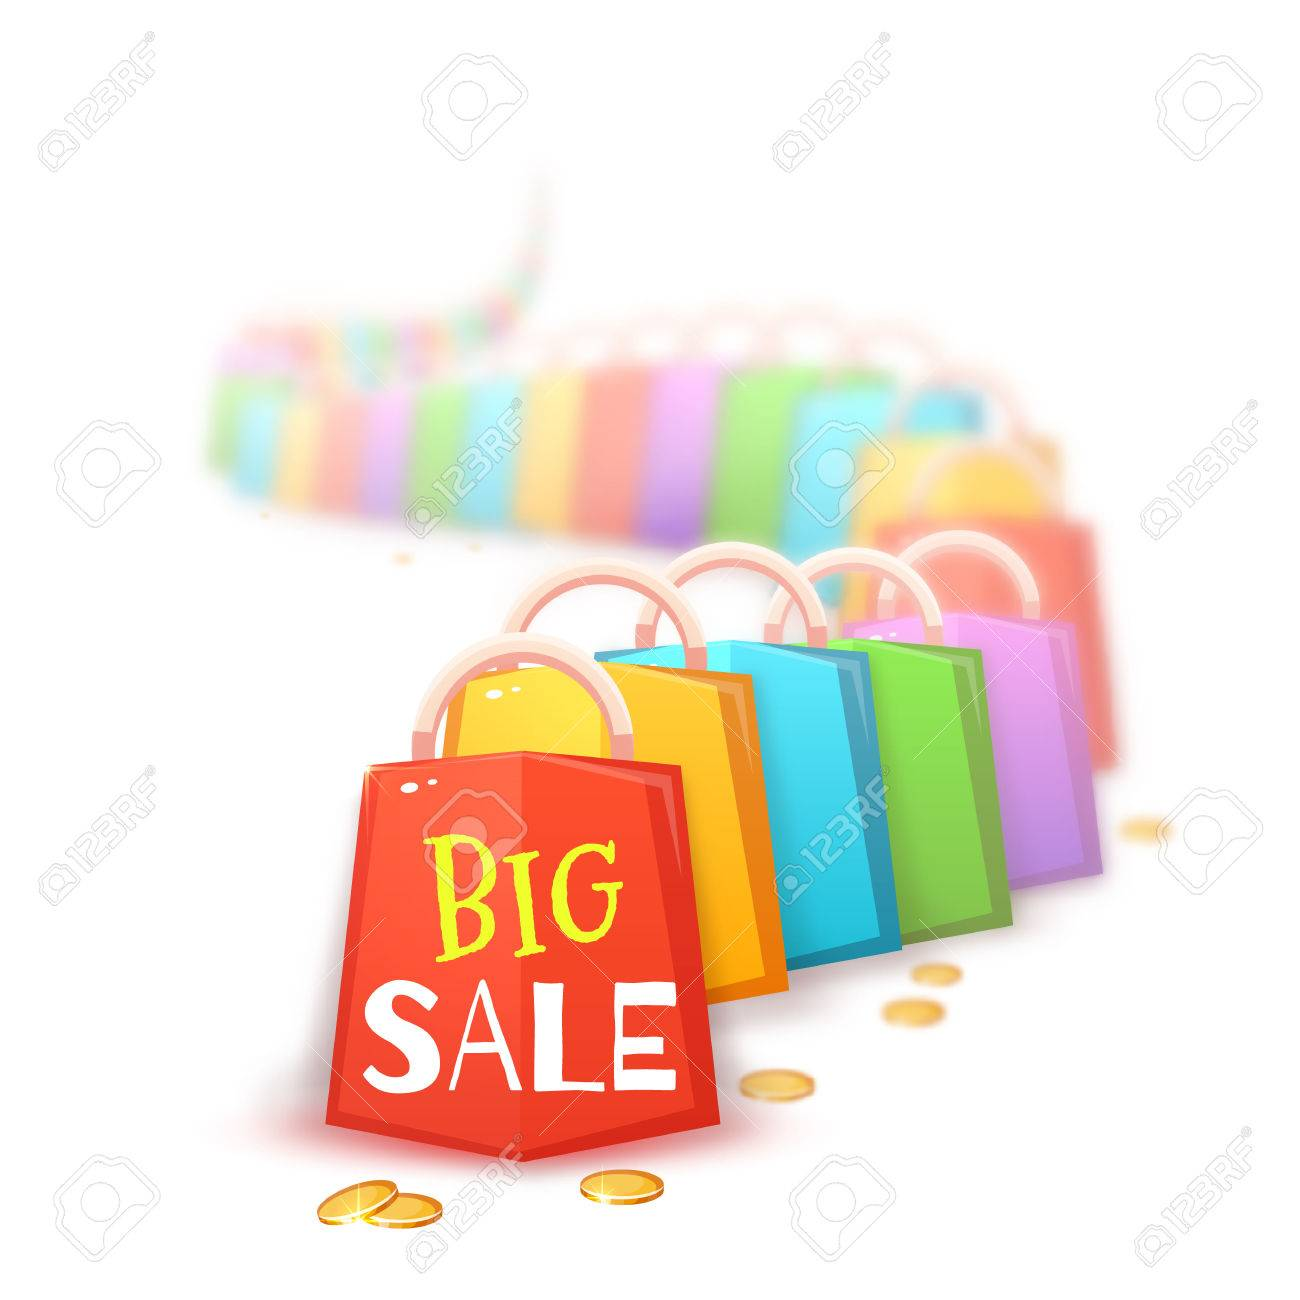 big sale banner with color packets and coins vector illustration stock vector 61122877 - Color Packets